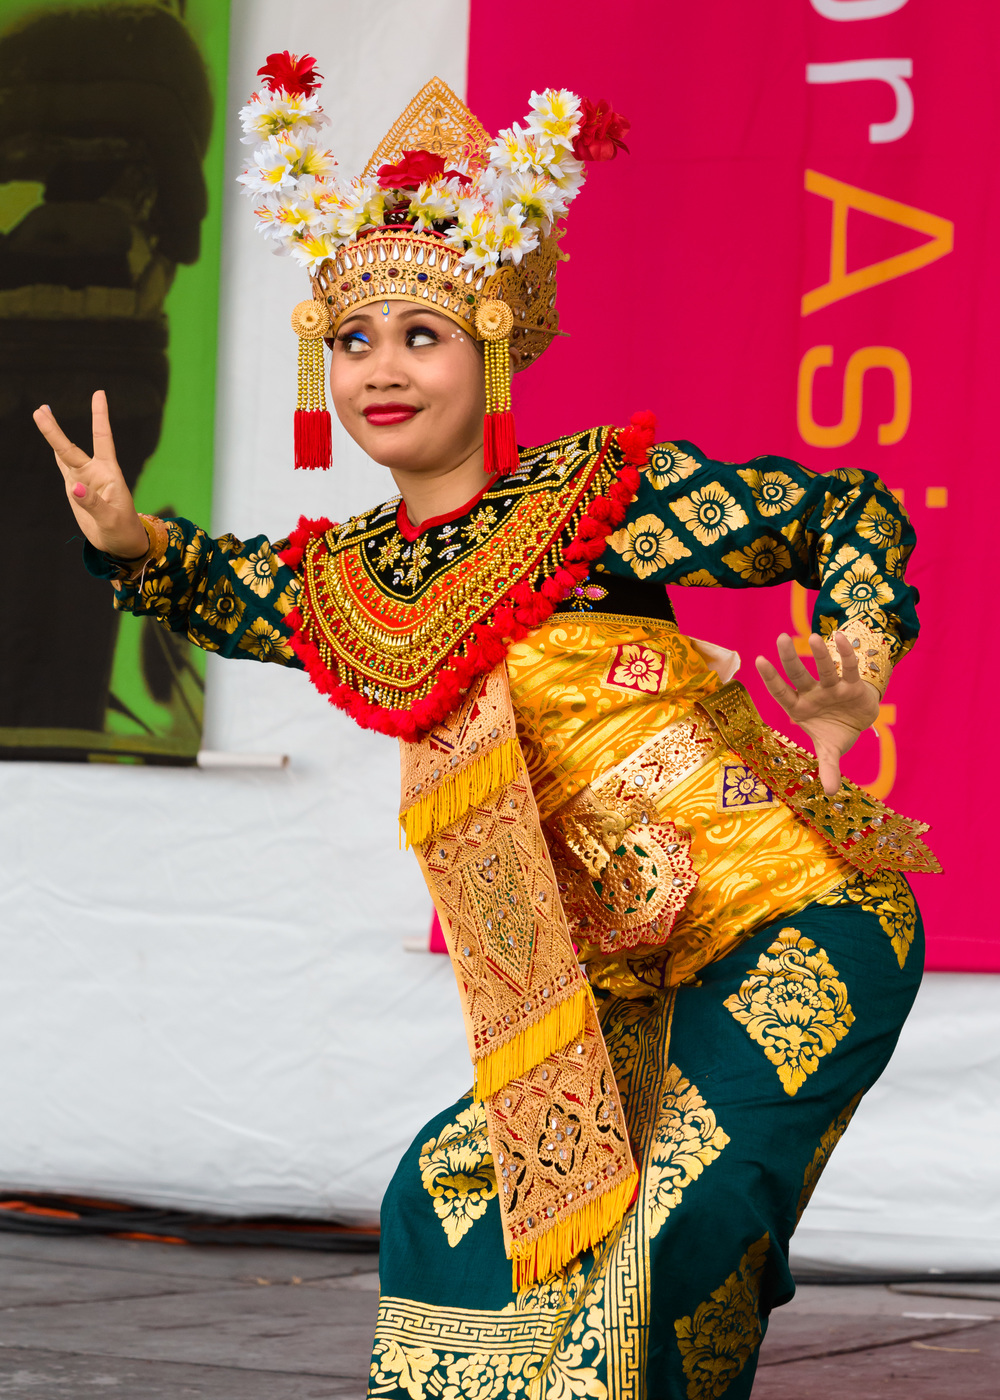 Nusantara+Indonesian+dance+troup.jpg